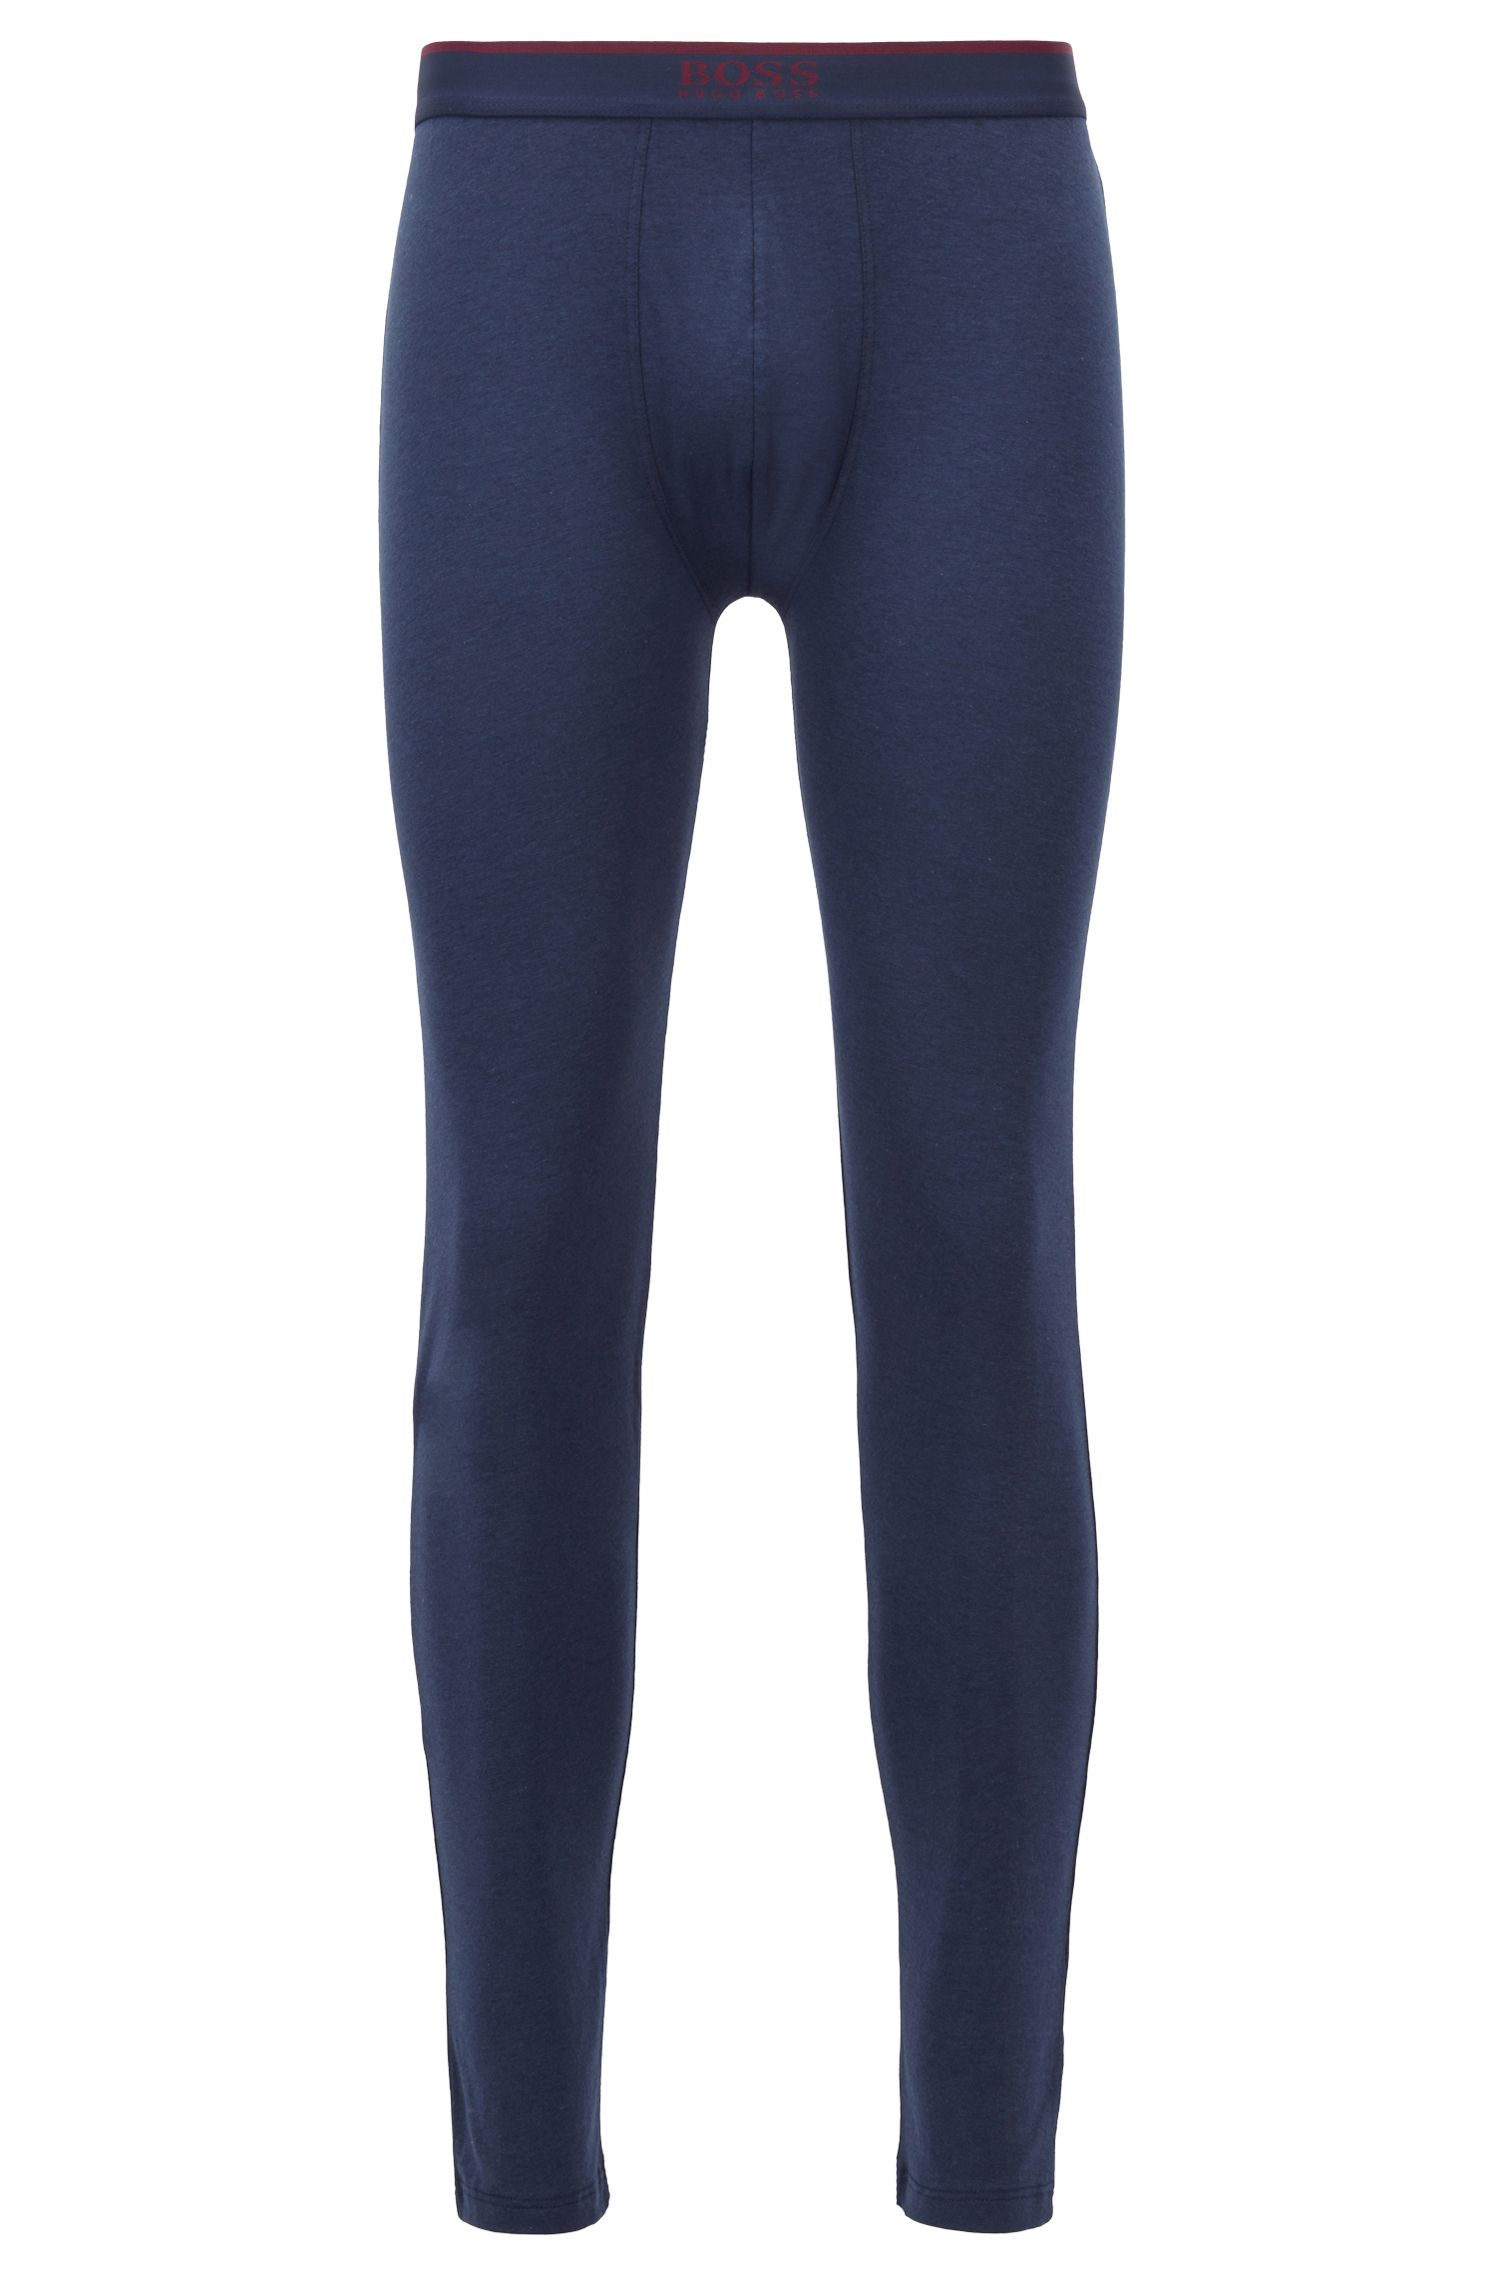 Long johns with logo waistband and double-layered crotch, Dark Blue